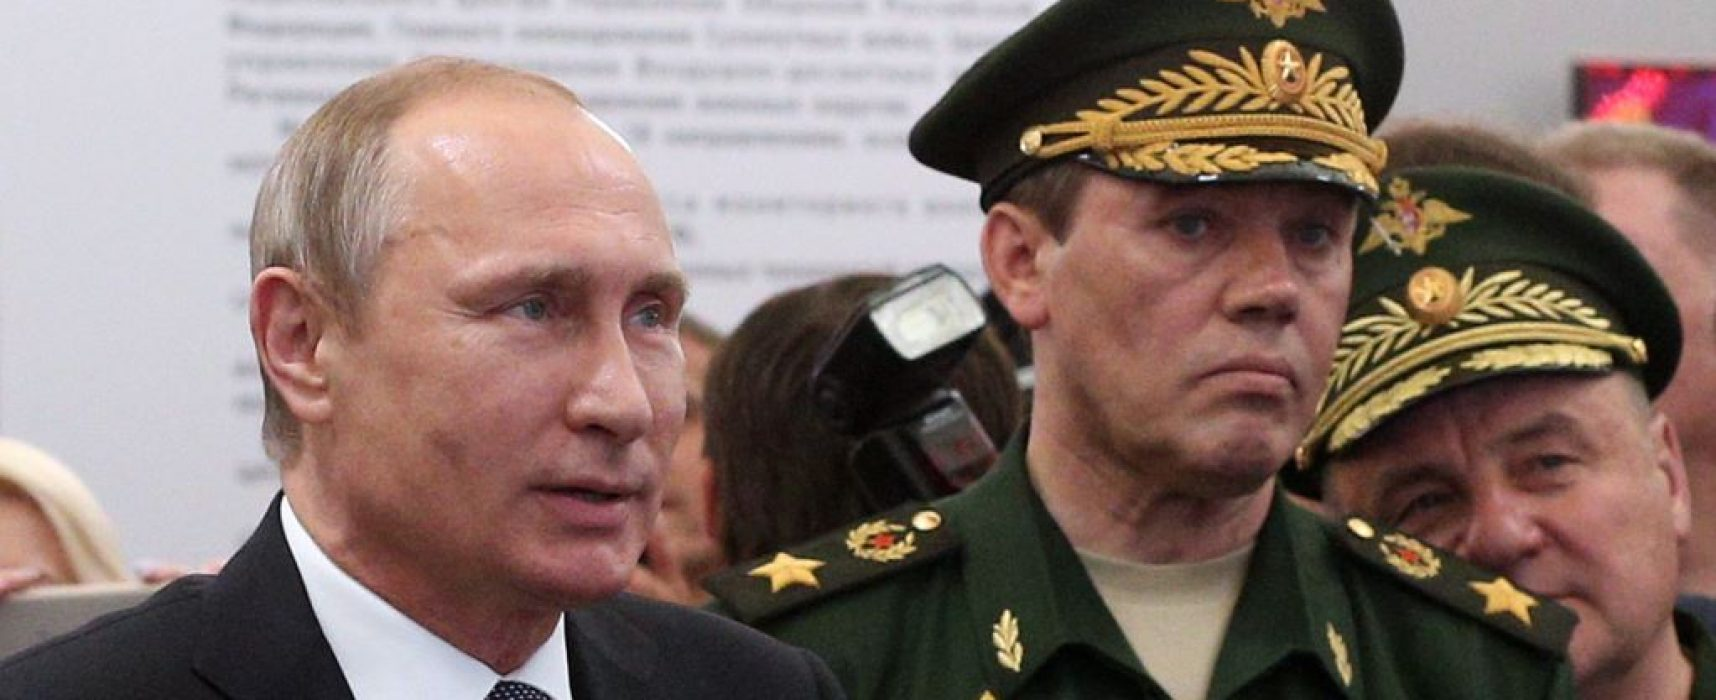 Top Russian general speaks about Syrian war, repeats debunked claims